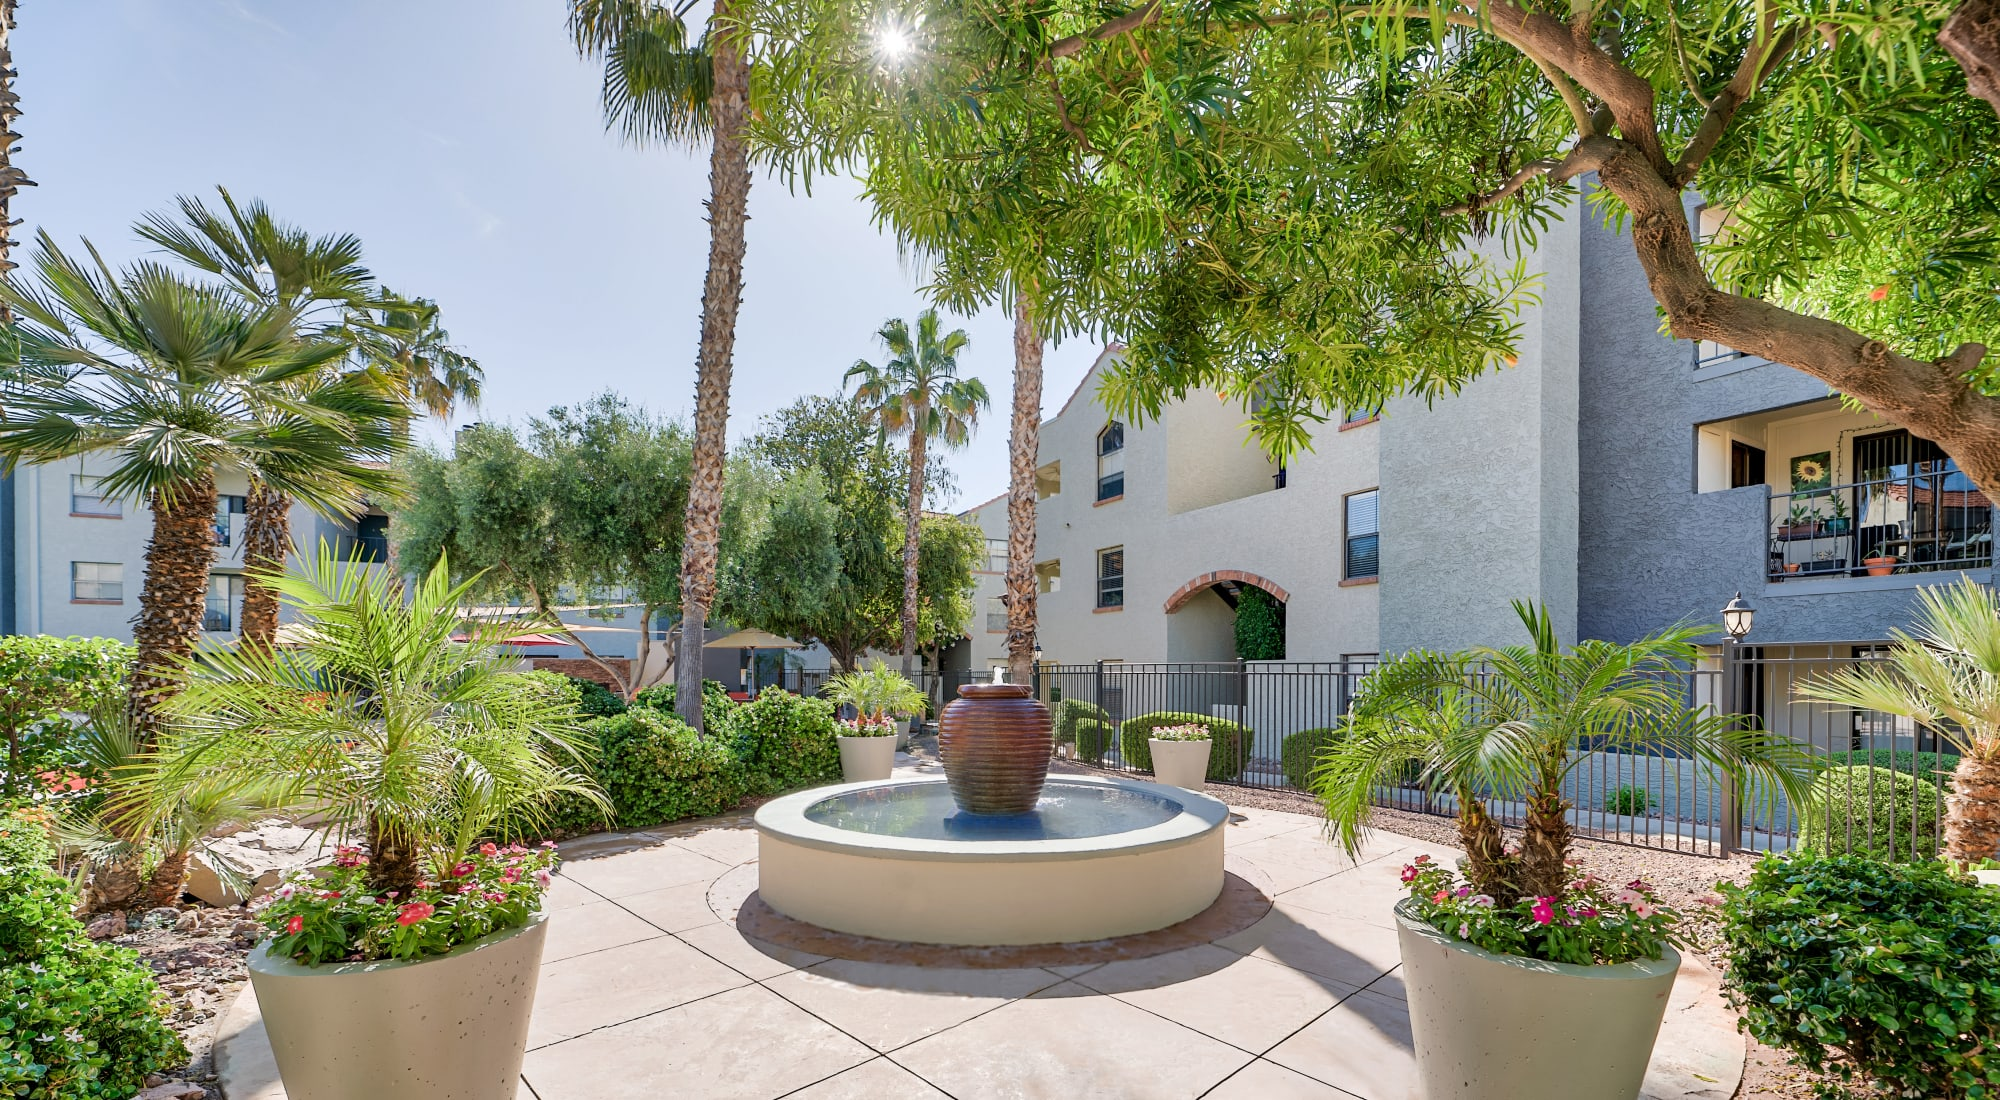 Greenspoint at Paradise Valley apartments in Phoenix, AZ